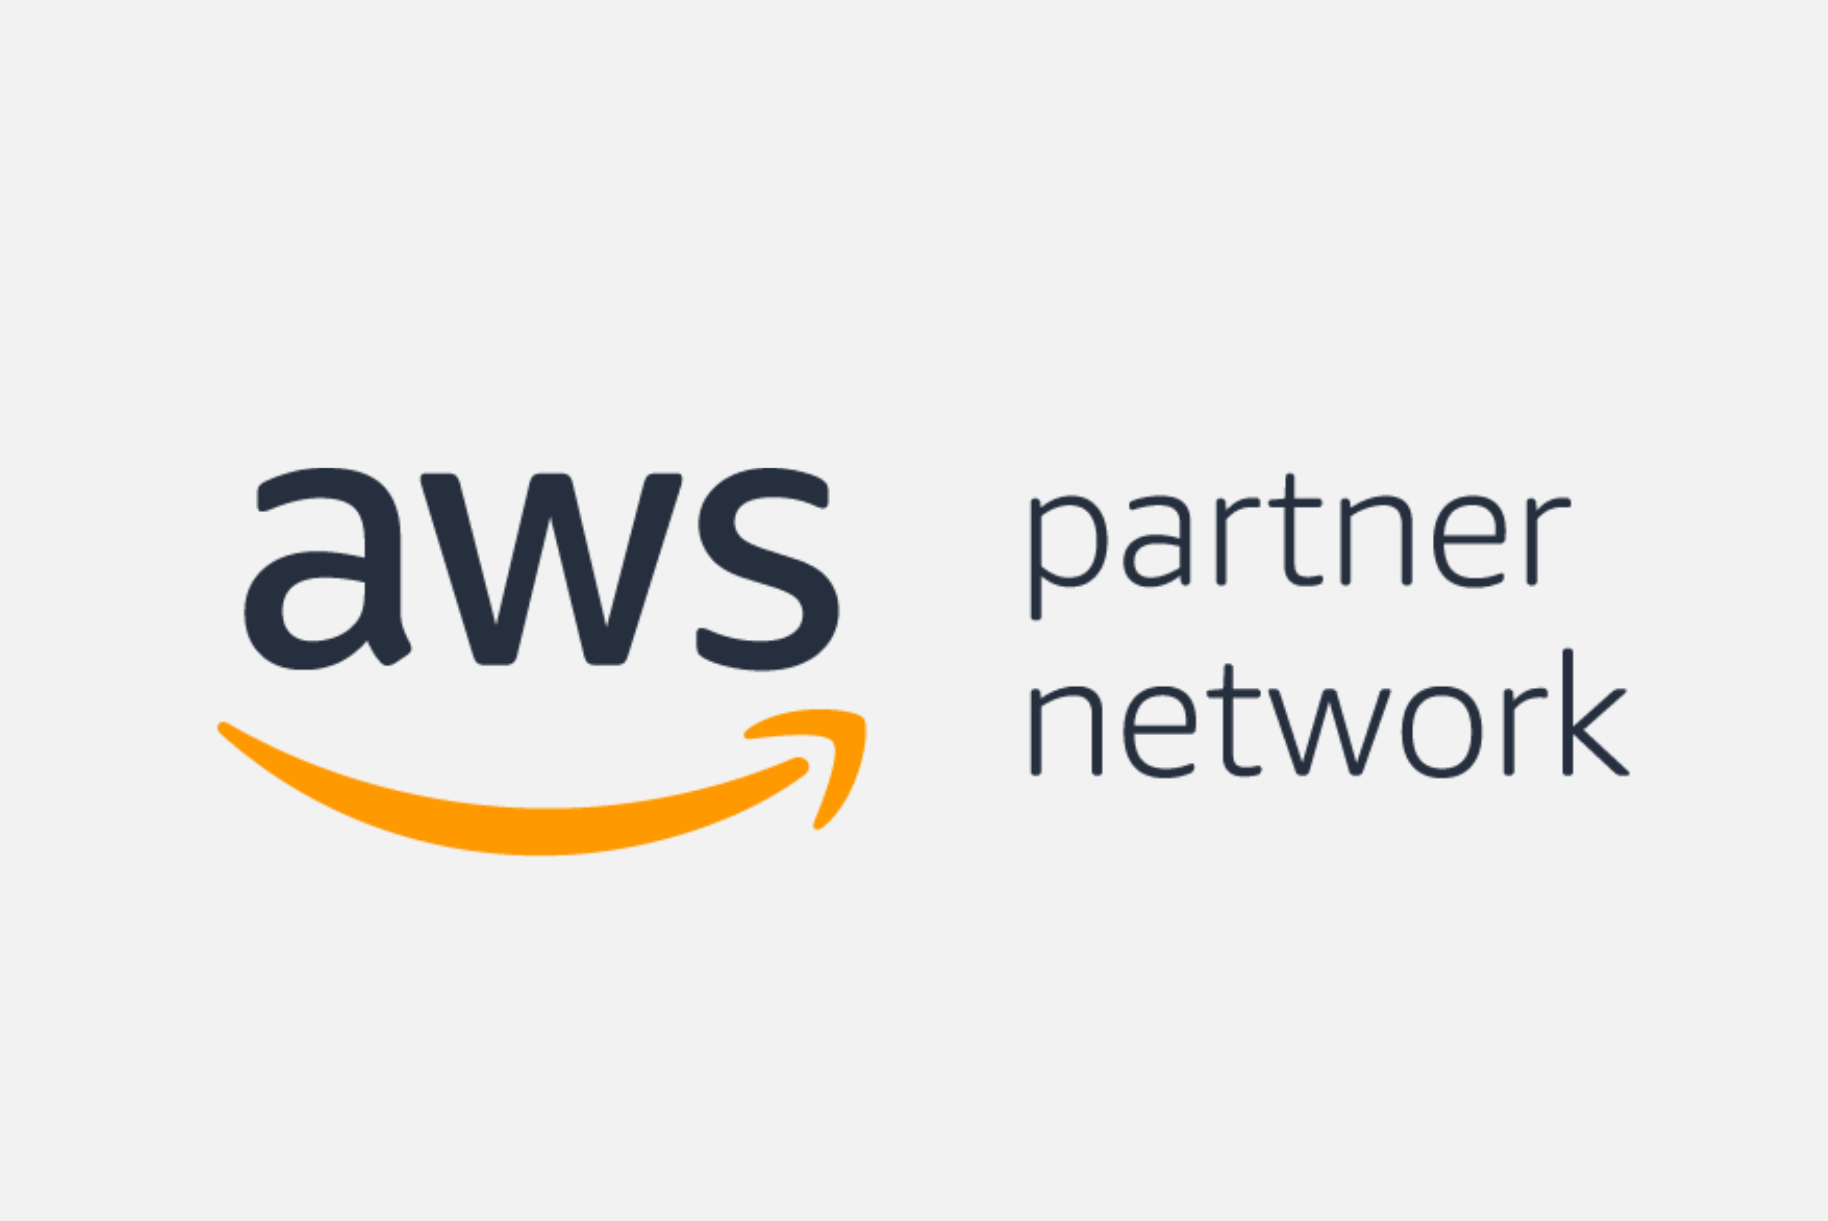 certified partnership - We are your certified Benelux AWS Consulting Partner with a unique focus on Serverless applications that optimize performance, costs, speed & innovation.